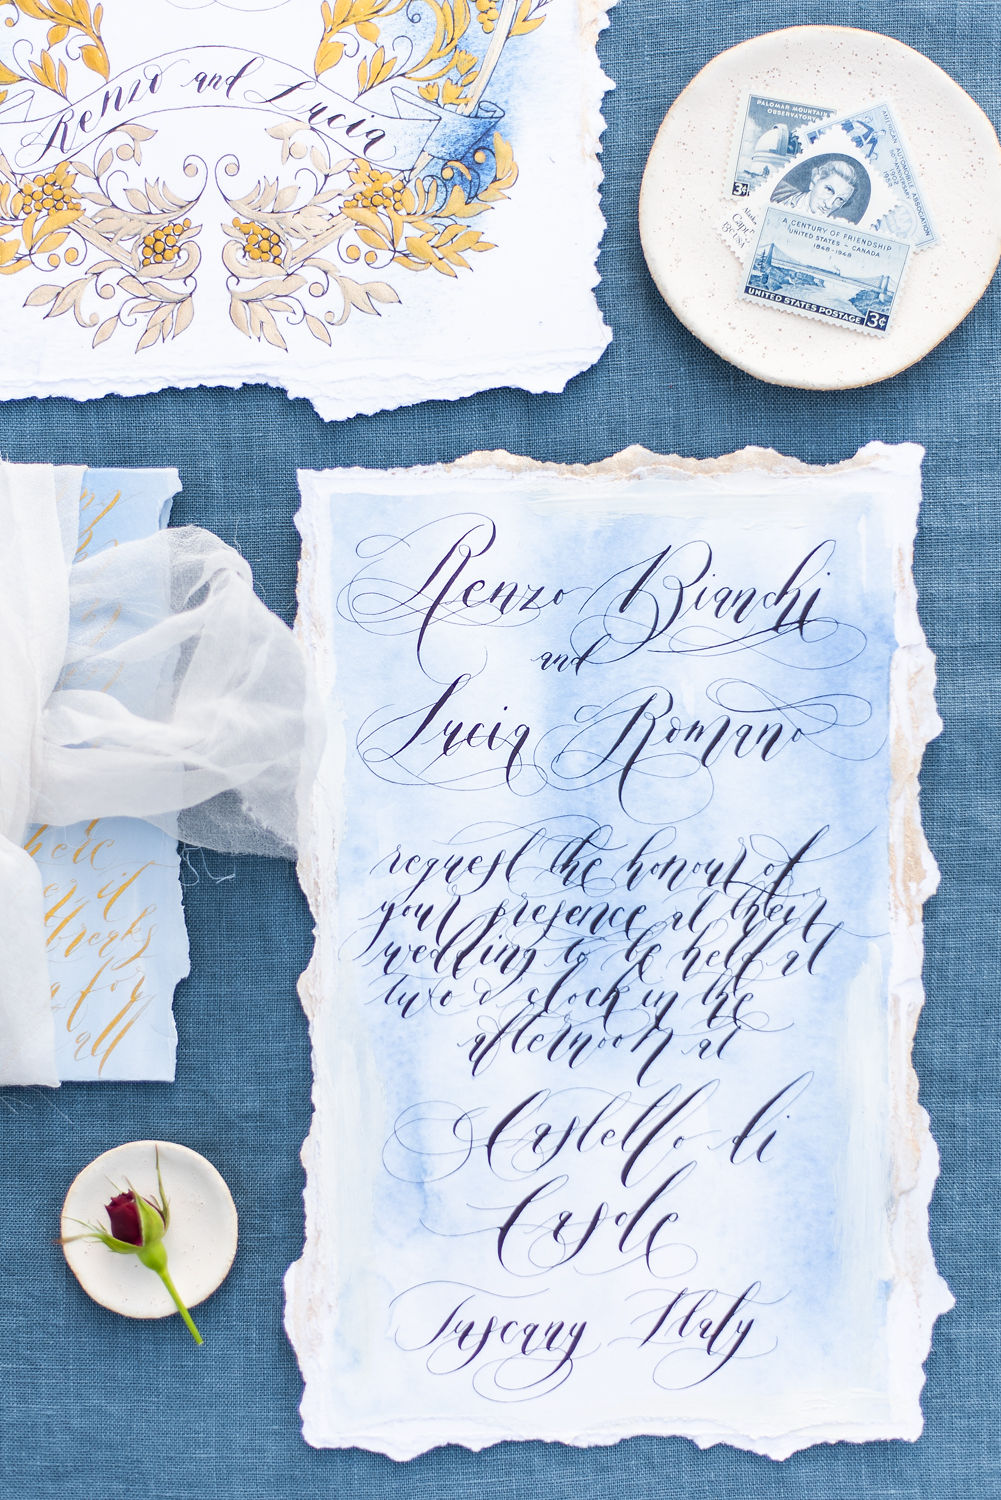 vow renewal invitation card with black calligraphy on a blue card